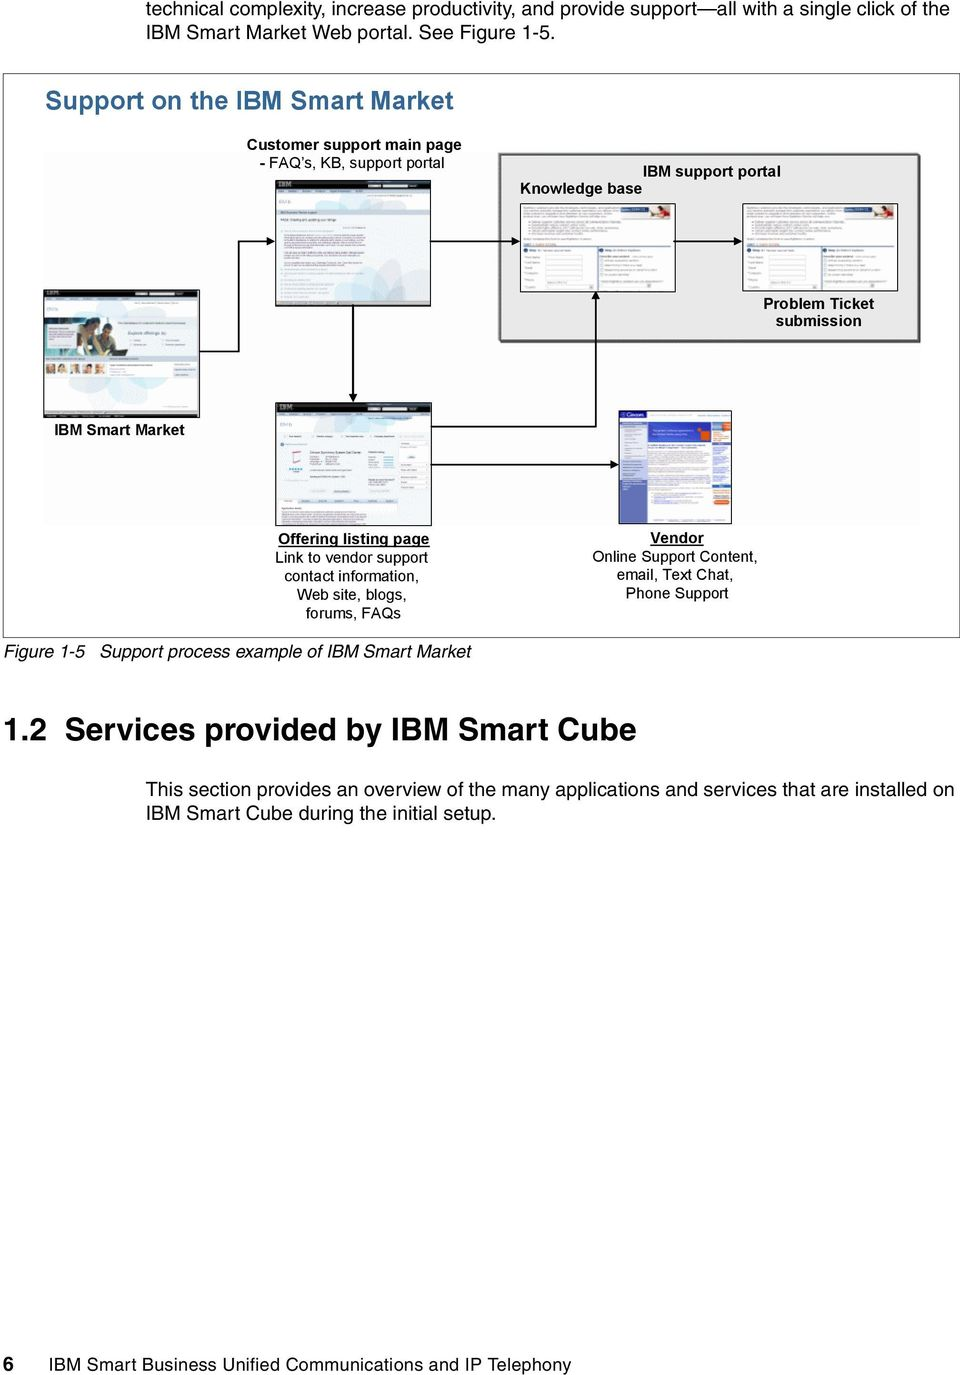 Link to vendor support contact information, Web site, blogs, forums, FAQs Vendor Online Support Content, email, Text Chat, Phone Support Figure 1-5 Support process example of IBM Smart